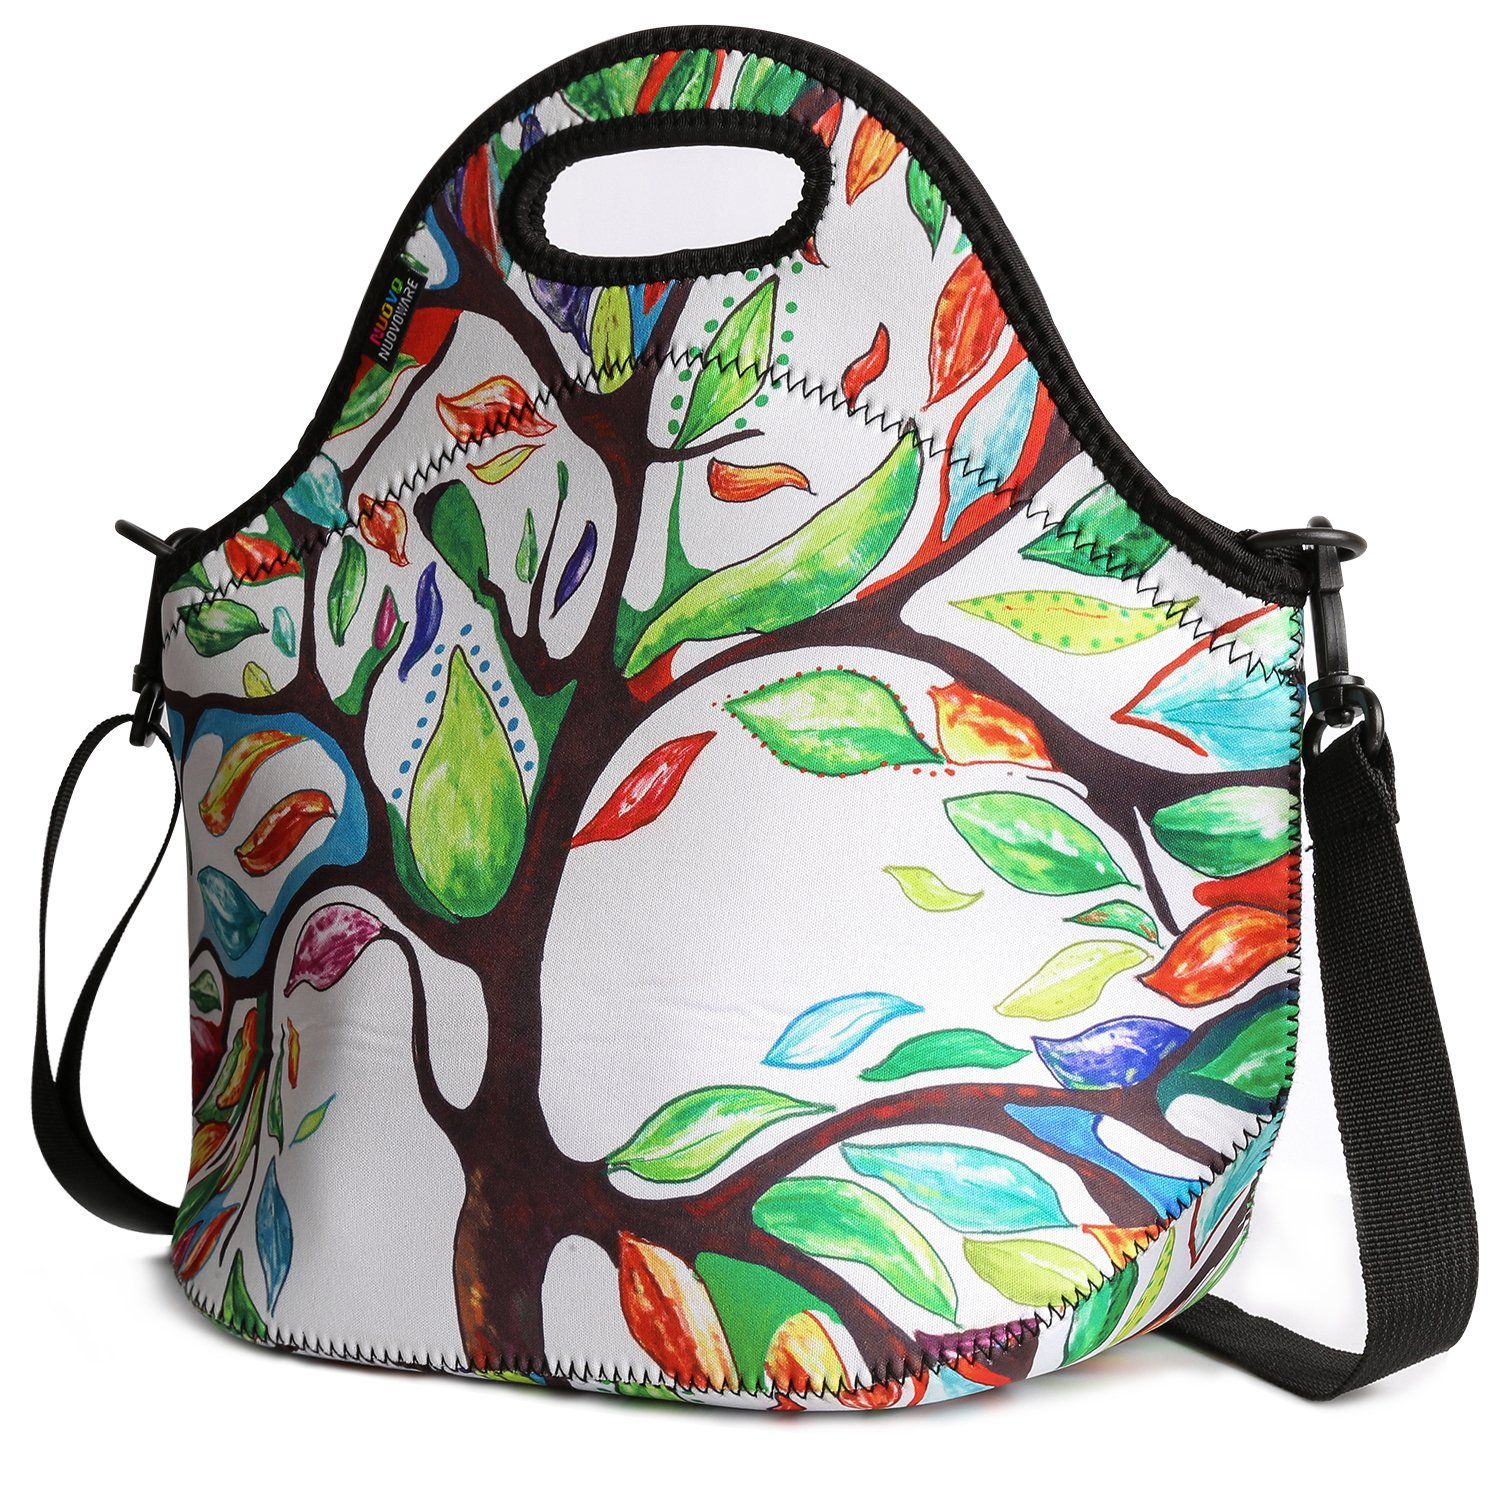 Insulated Lunch Bag, Nuovoware Neoprene Lunch Tote Reusable Picnic Bag Soft Thermal Cooler Tote Multi-purpose Grocery Container with Adjustable Crossbody Strap, Zip Closure, Starry Night LY-3635